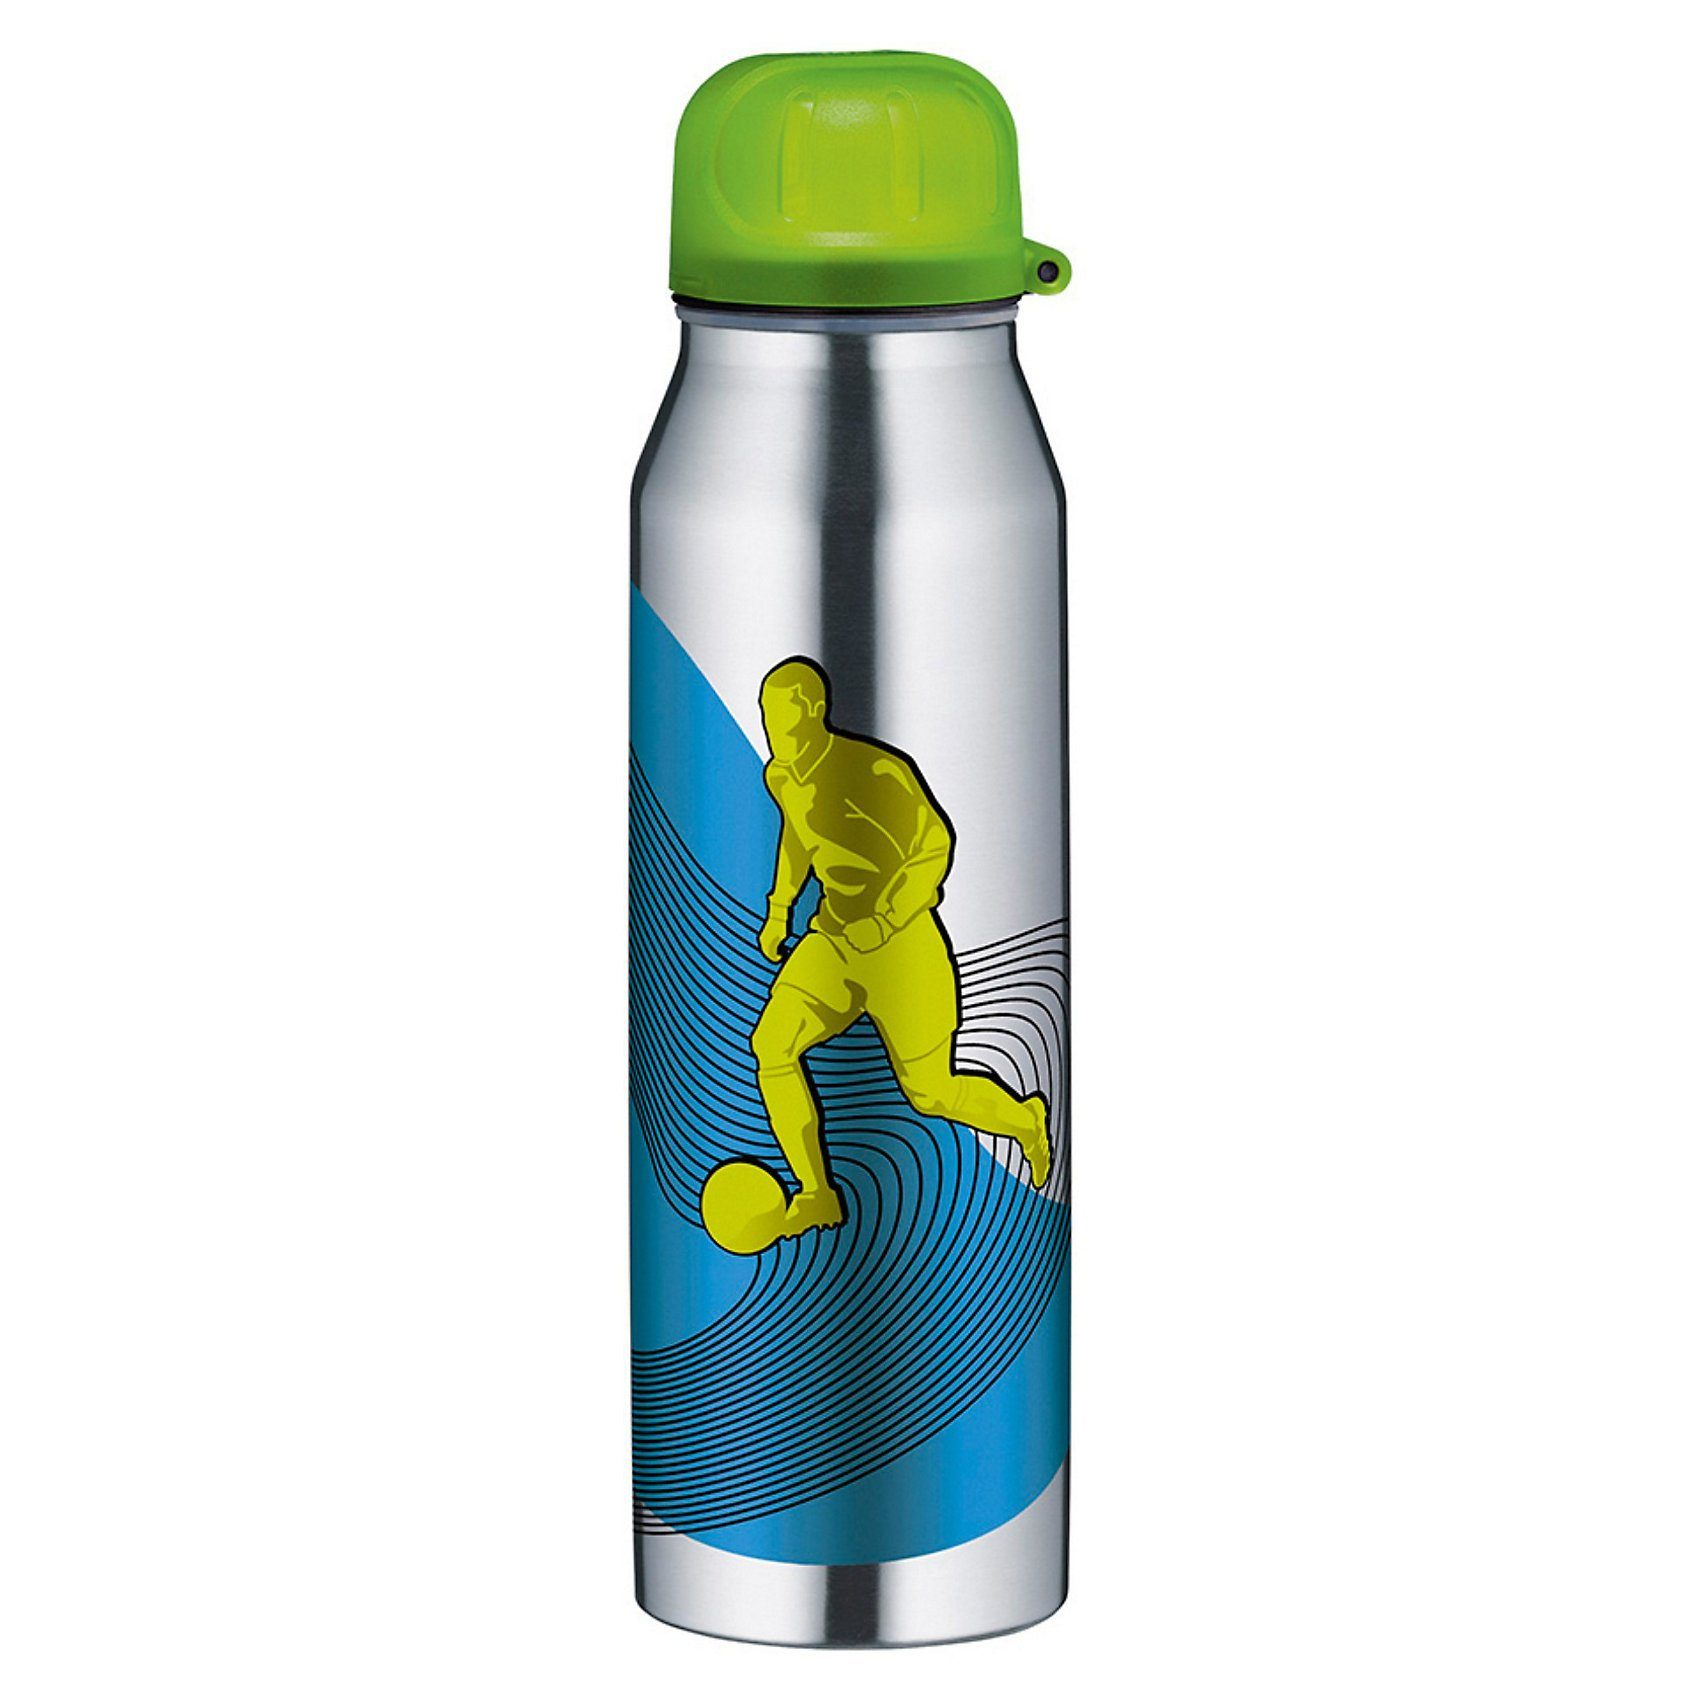 Alfi Isolier-Trinkflasche isoBottle Active Fußball, 500 ml